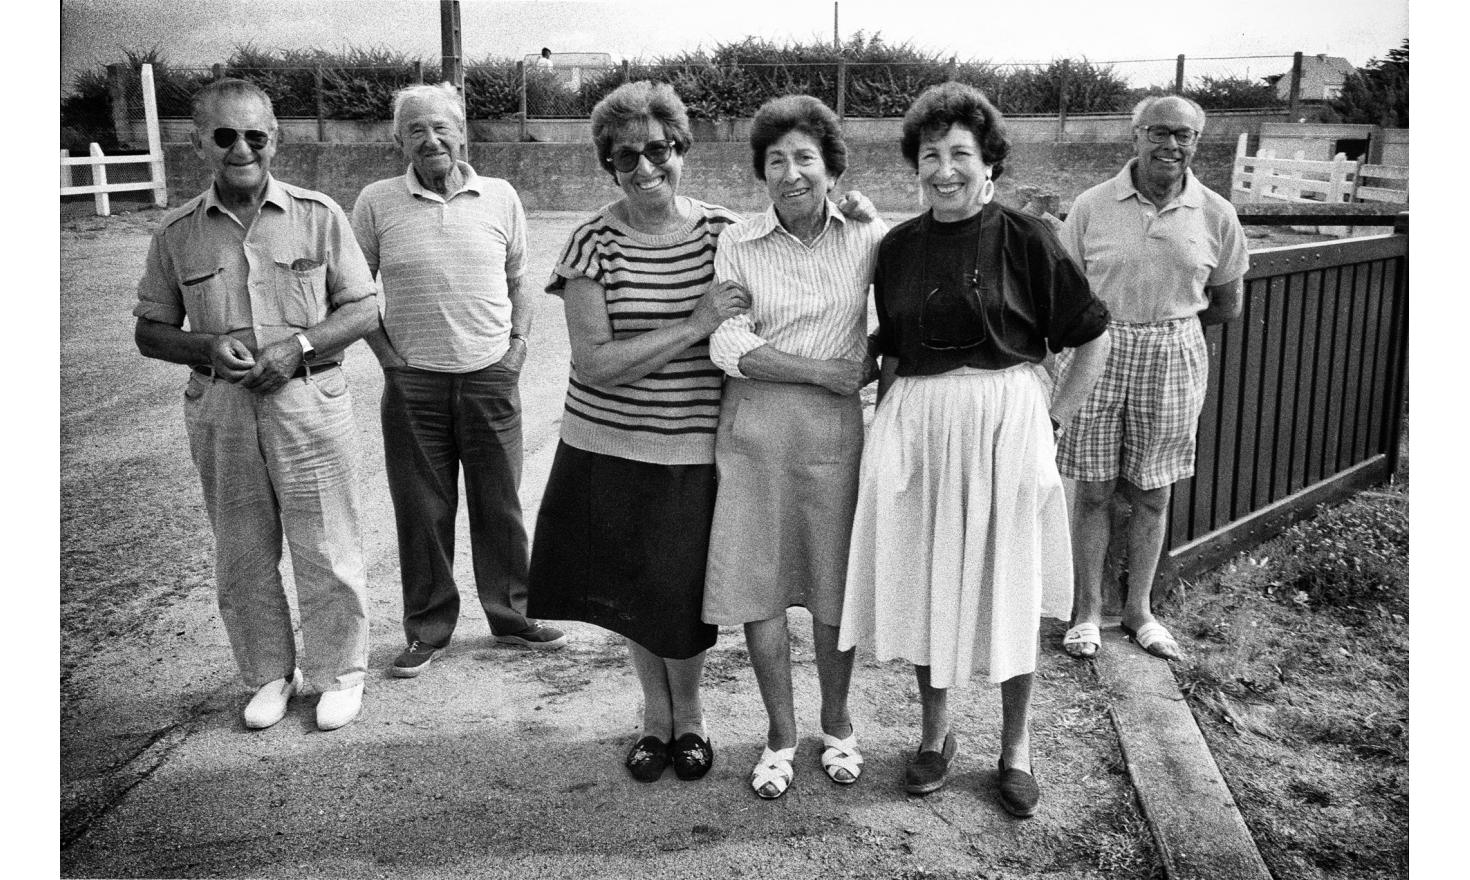 My mother and her two sisters. Behind them, the three brother in law. My father is on the far left. Batz sur mer, august 1992.